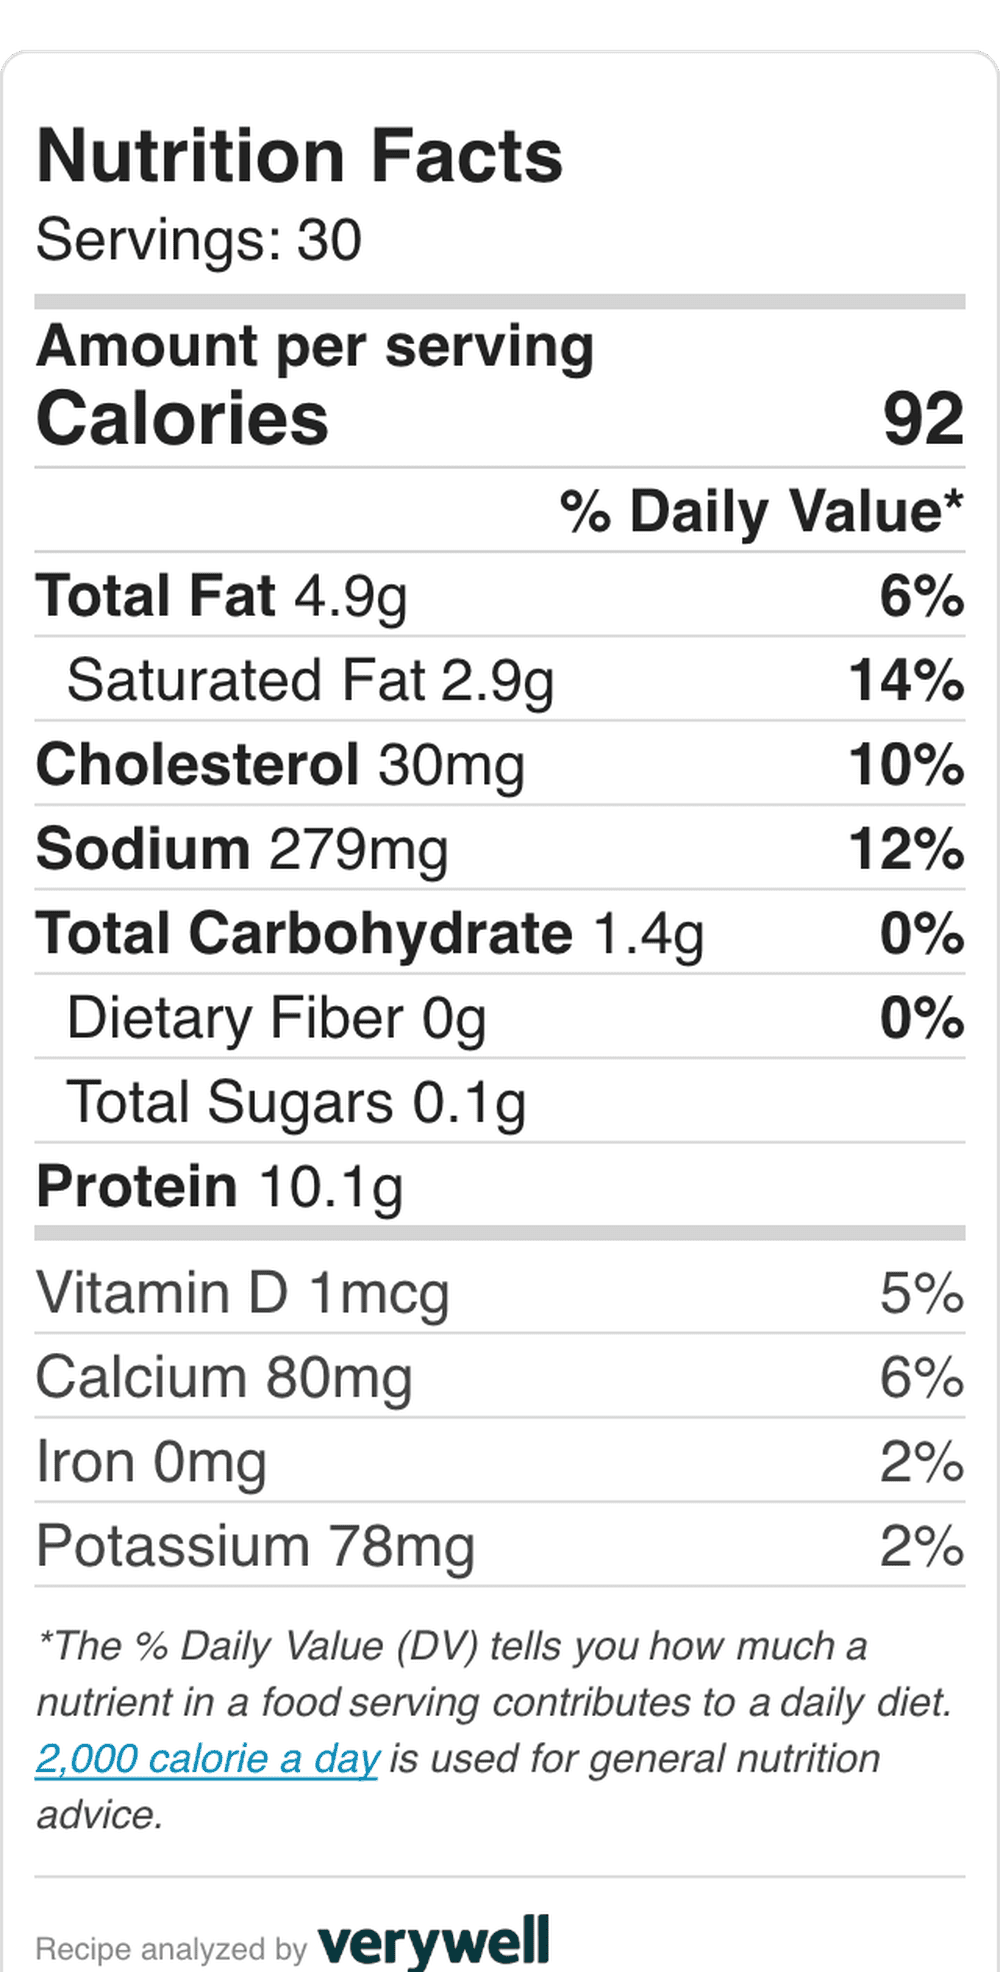 Nutrition Label Embed 975570840 5Bf5Bd71C9E77C0051D5C2F9